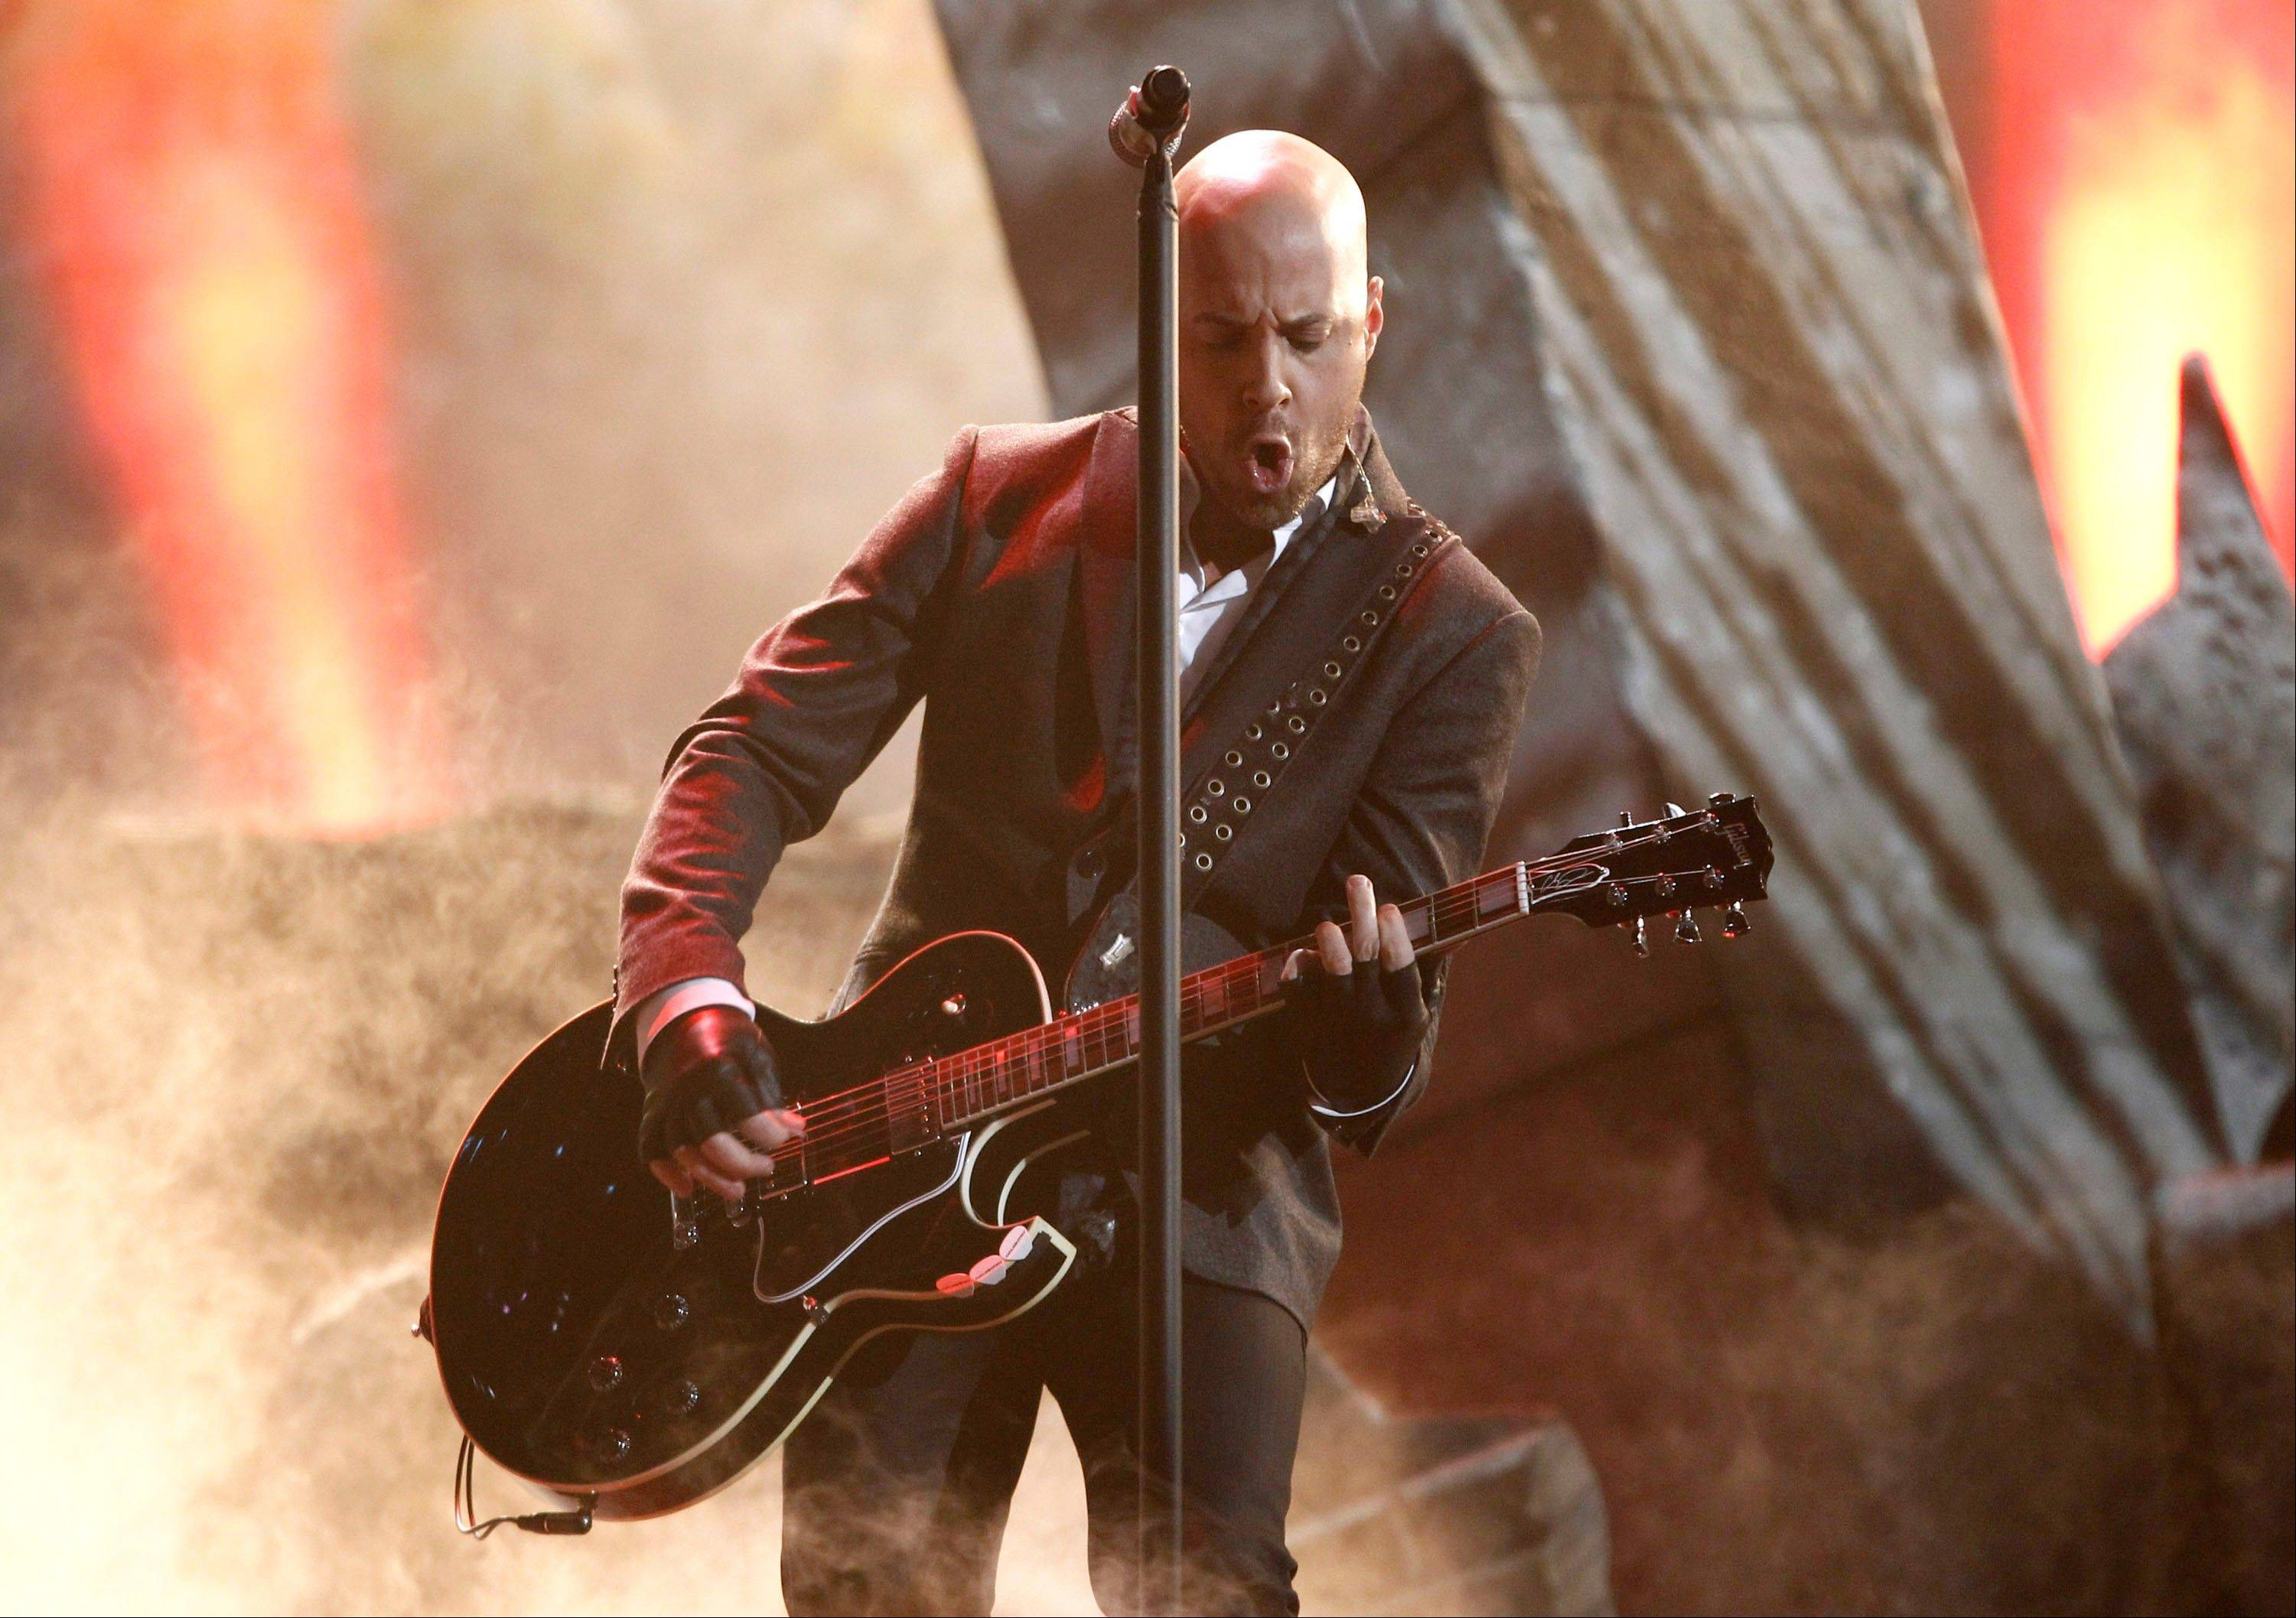 Chris Daughtry, of the band Daughtry, perform at the 39th Annual American Music Awards on Sunday, Nov. 20, 2011 in Los Angeles.